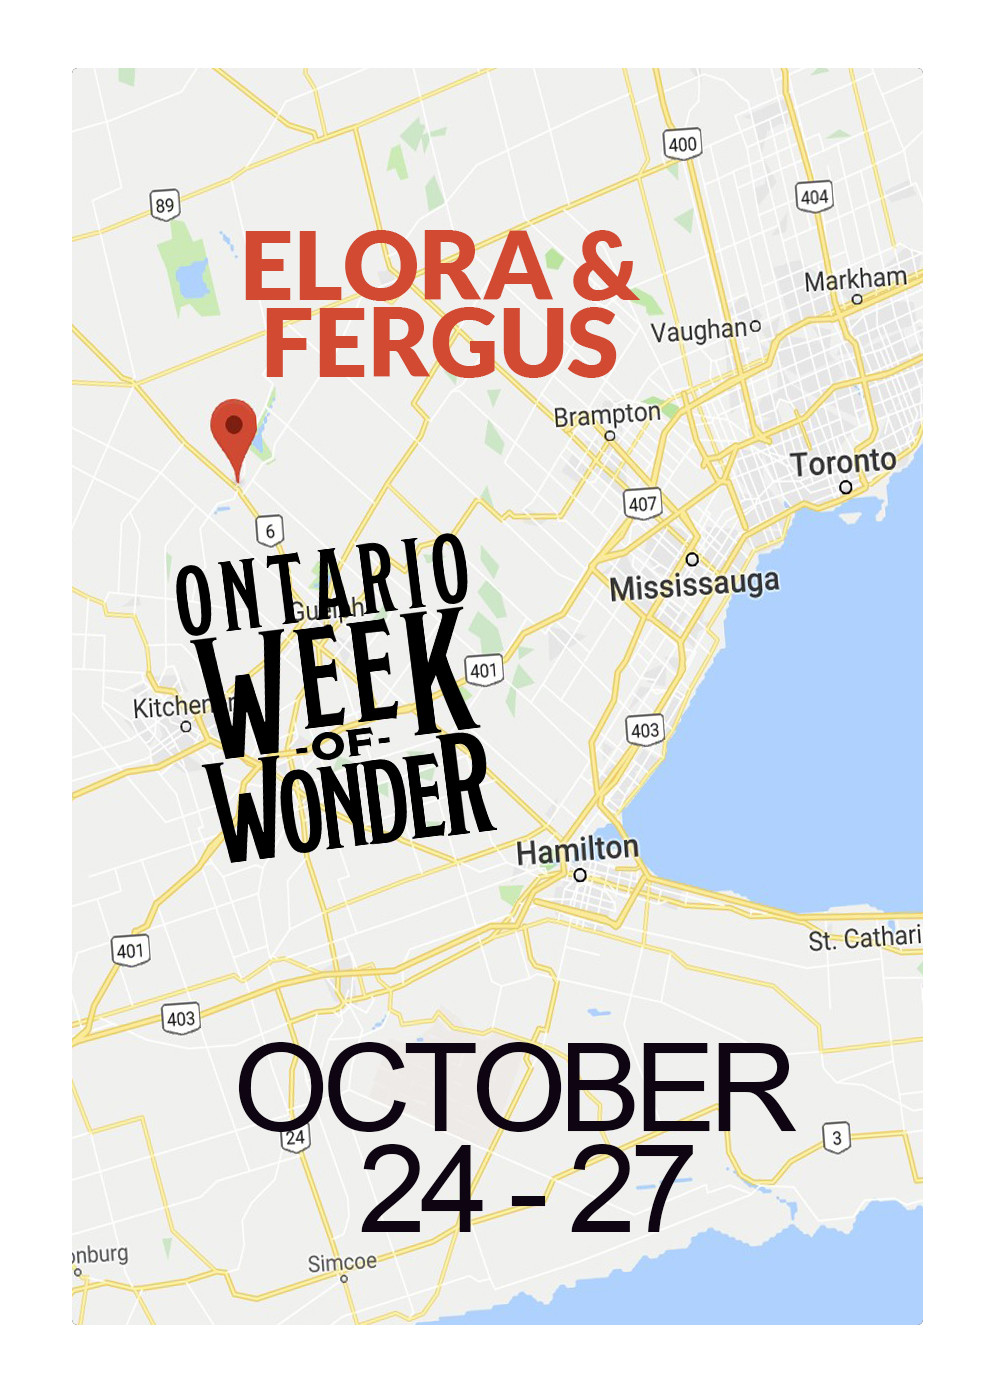 map of Fergus and Toronto pointing out the location of the OWOW Magic Festival